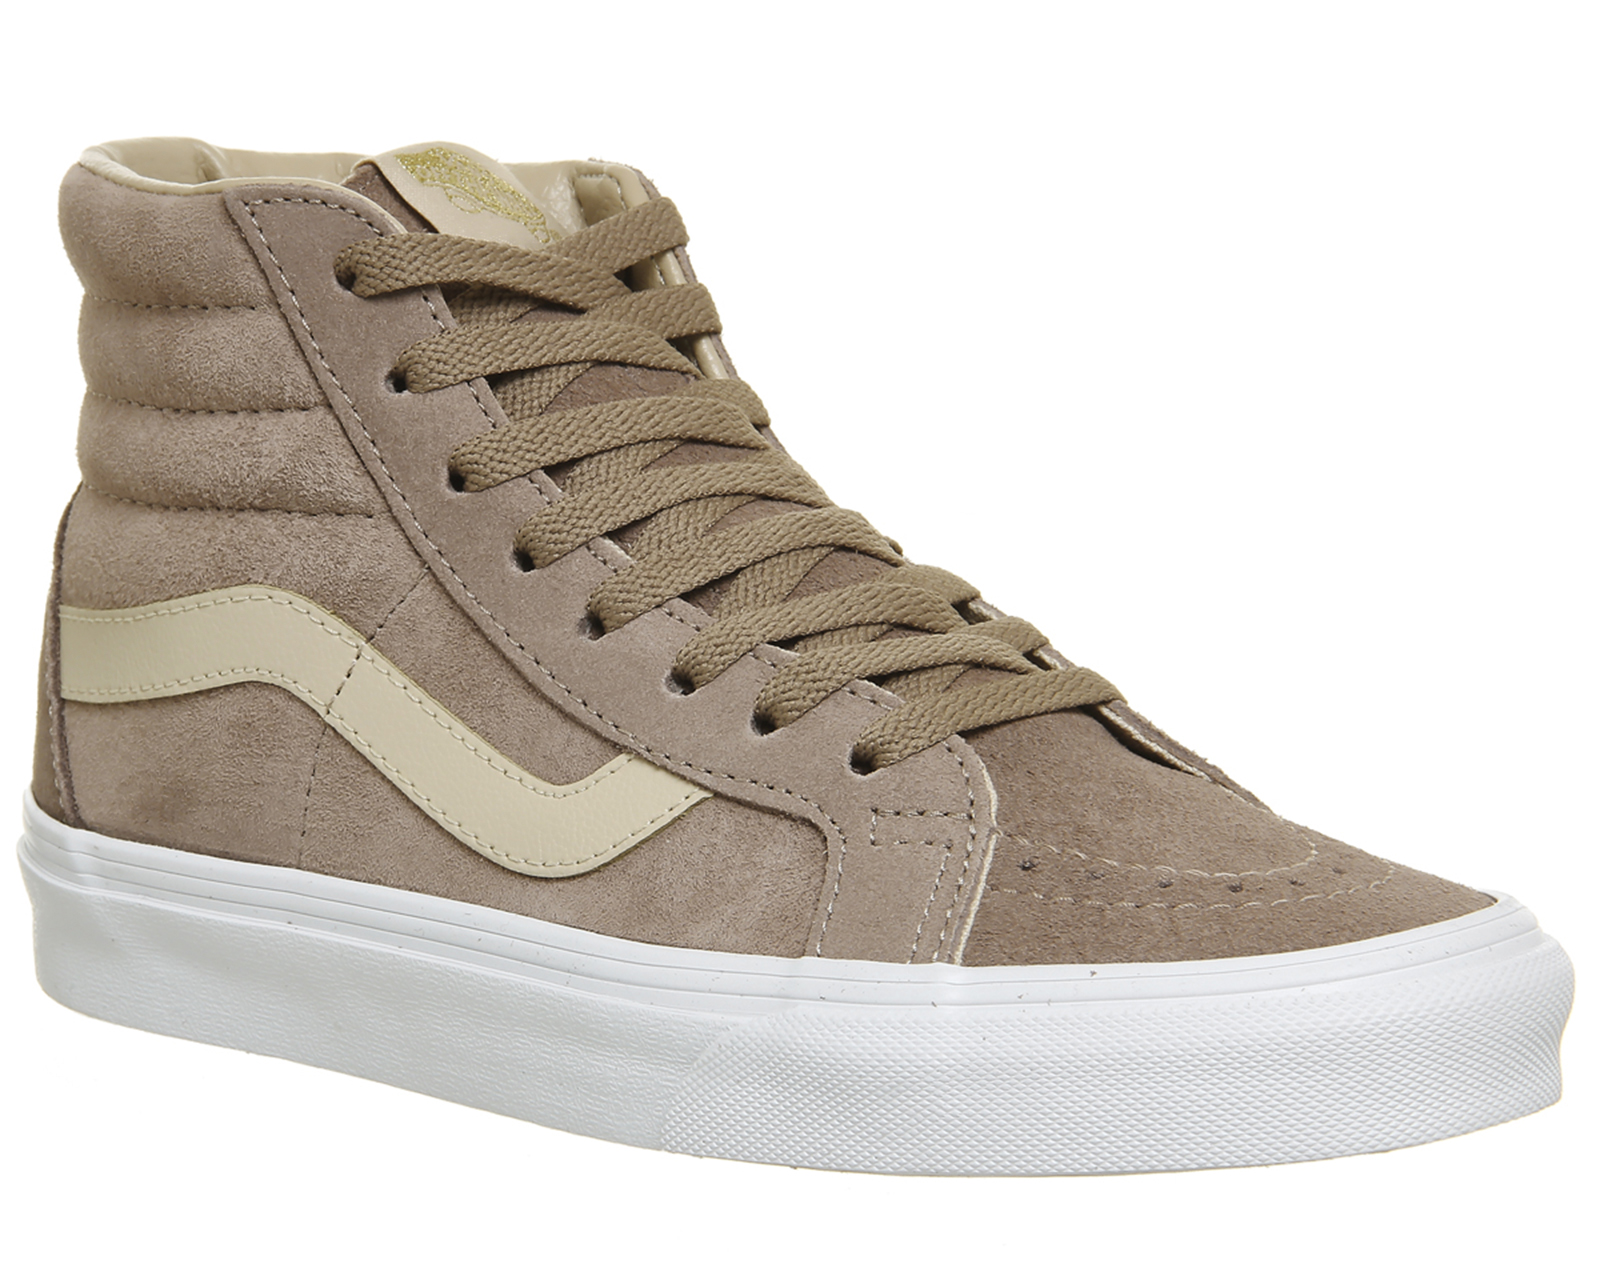 957c1abacc Sentinel Mens Vans Sk8 Hi Trainers Stucco Shifting Sand True White  Exclusive Trainers Sho